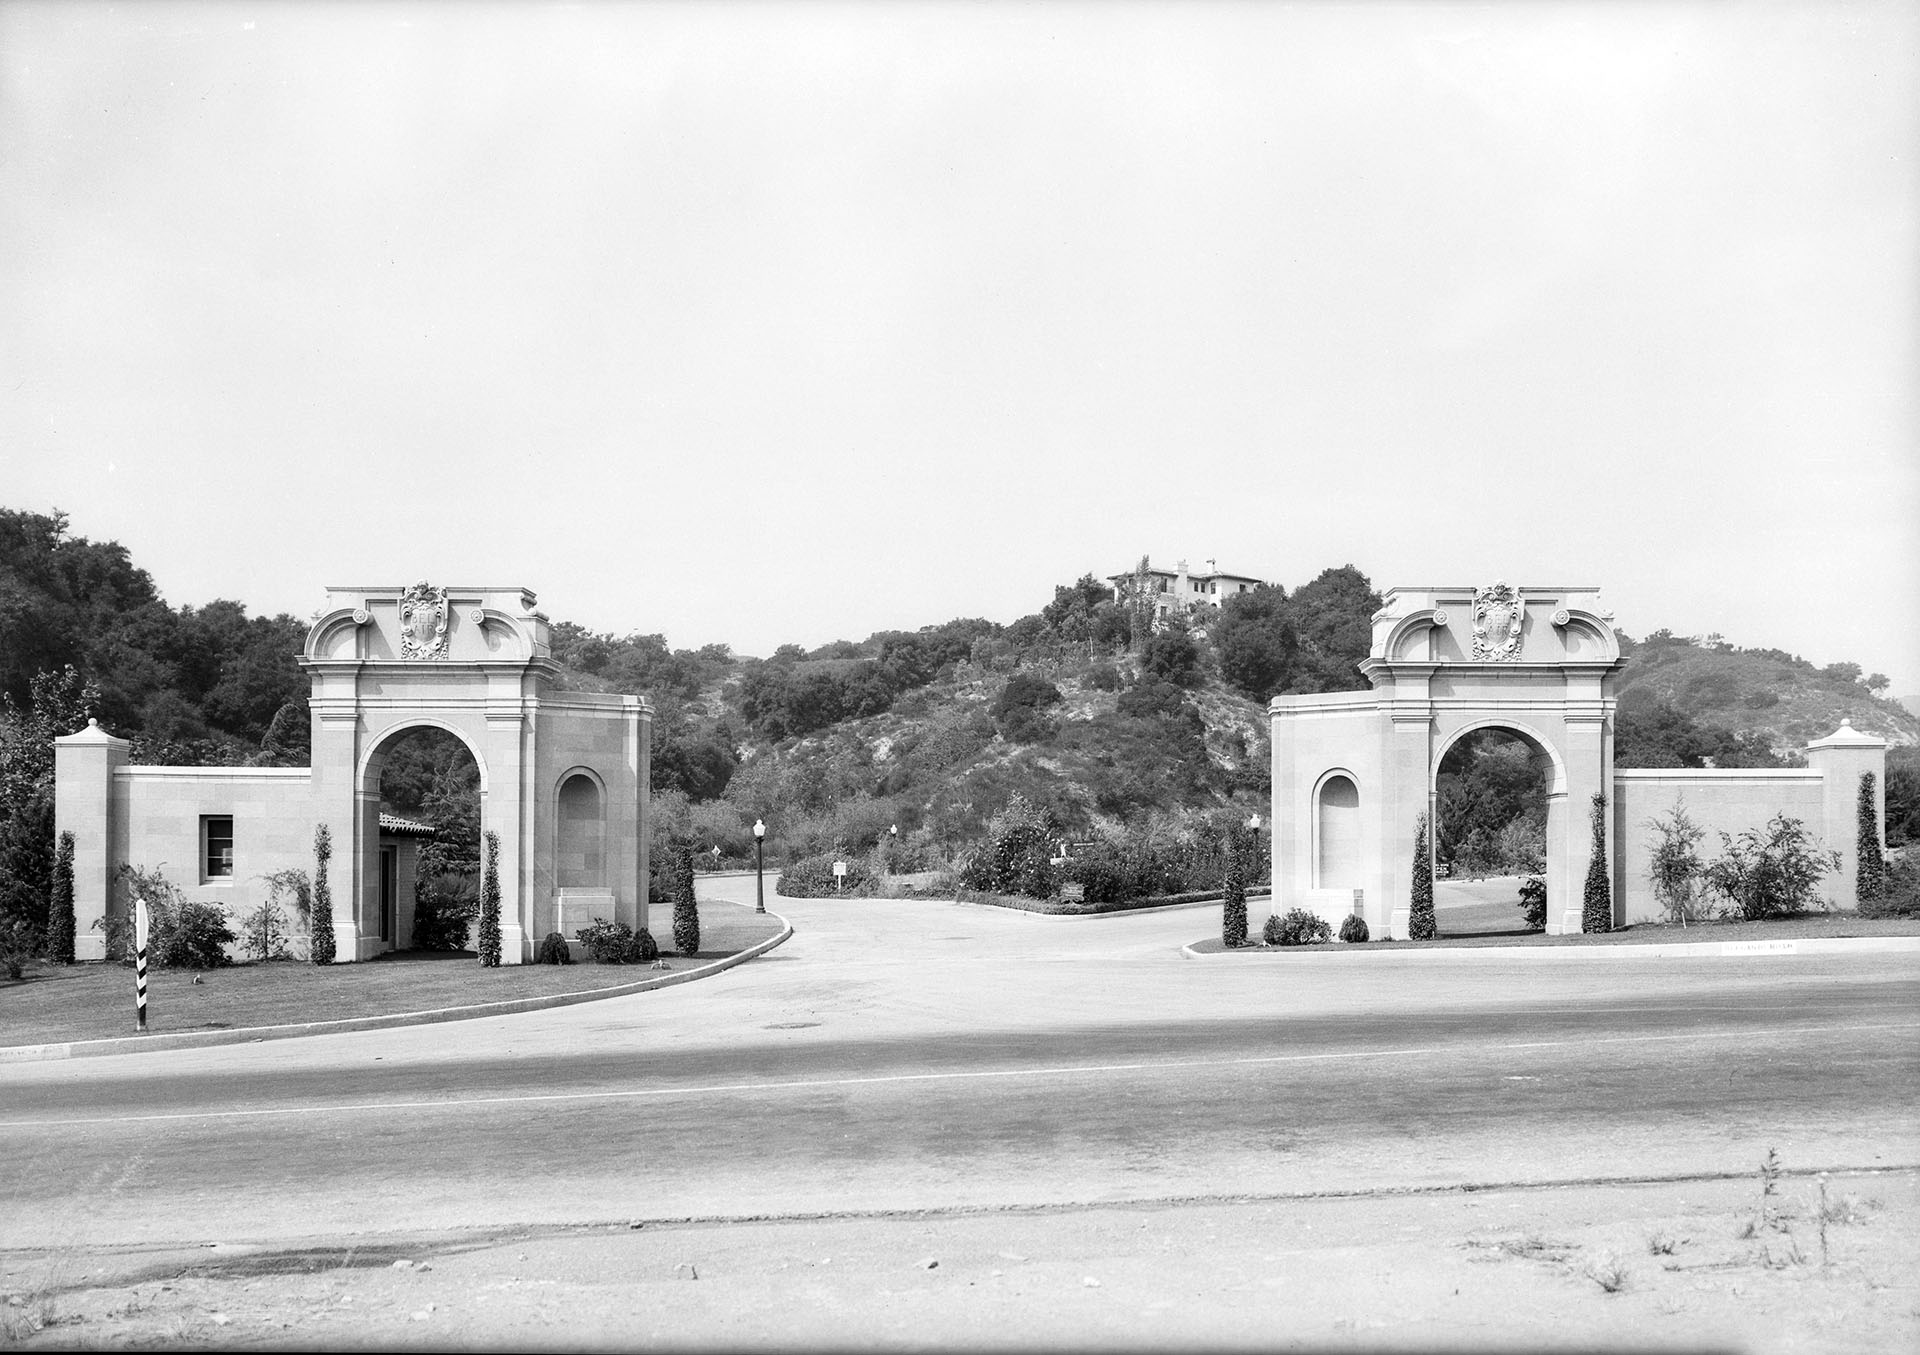 Bel Air entrance, 1932